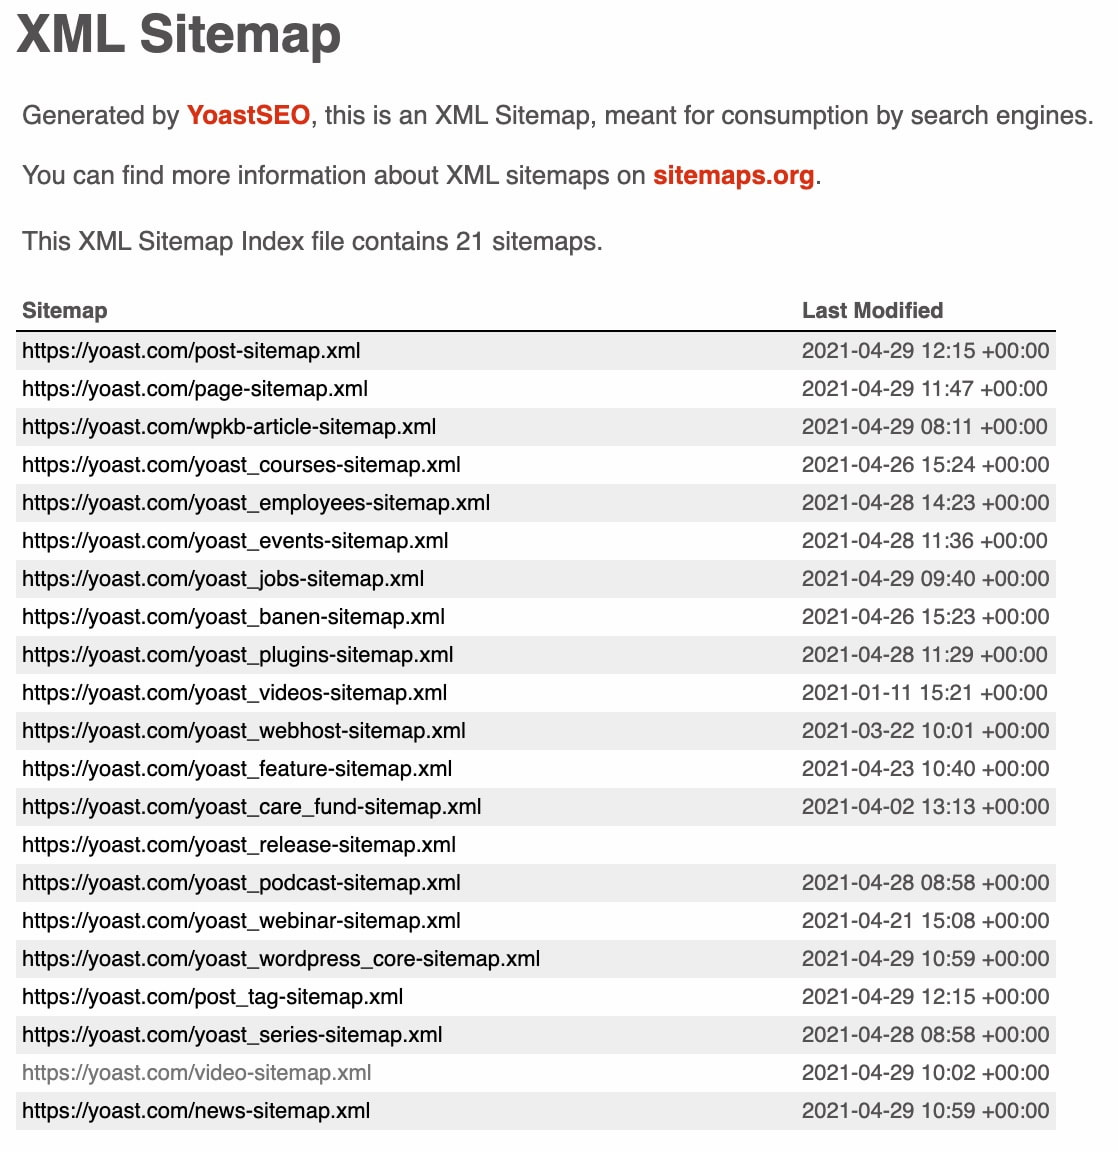 an image of the xml sitemap on yoast.com